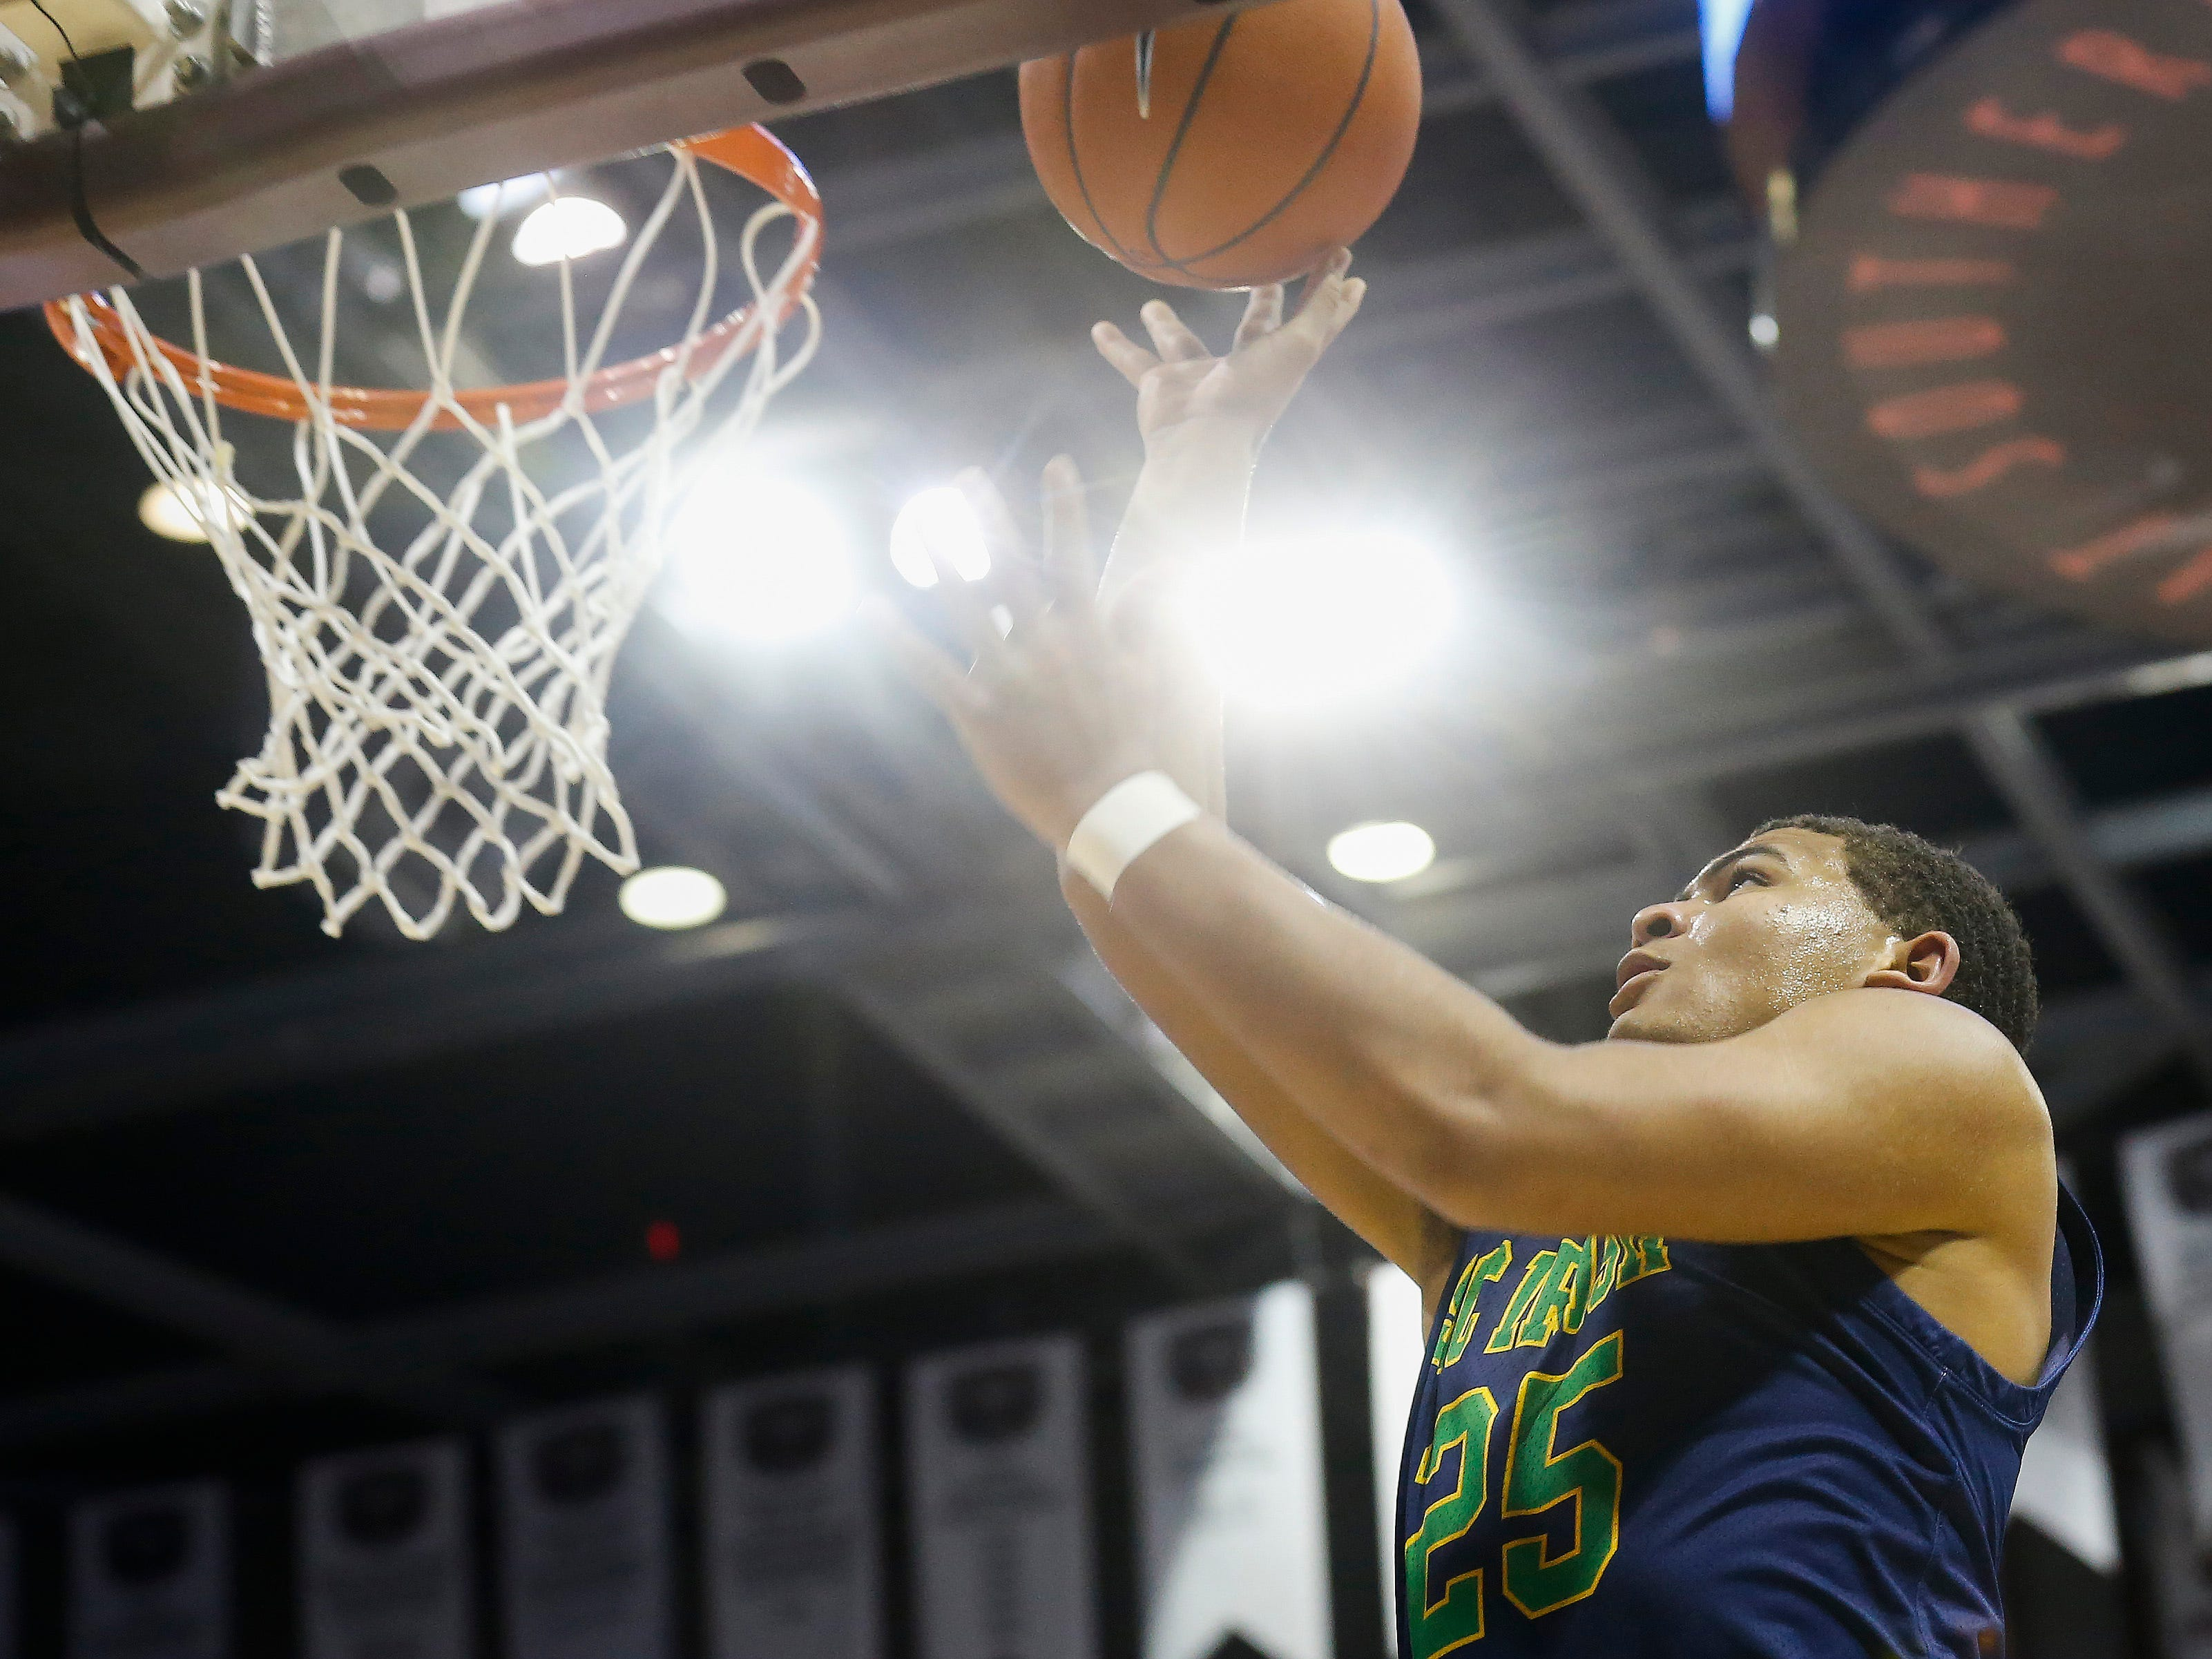 Tyson Riley, of Springfield Catholic, shoots the ball during the Irish's  game against McEachern at the Bass Pro Shops Tournament of Champions at JQH Arena on Thursday, Jan. 17, 2019.